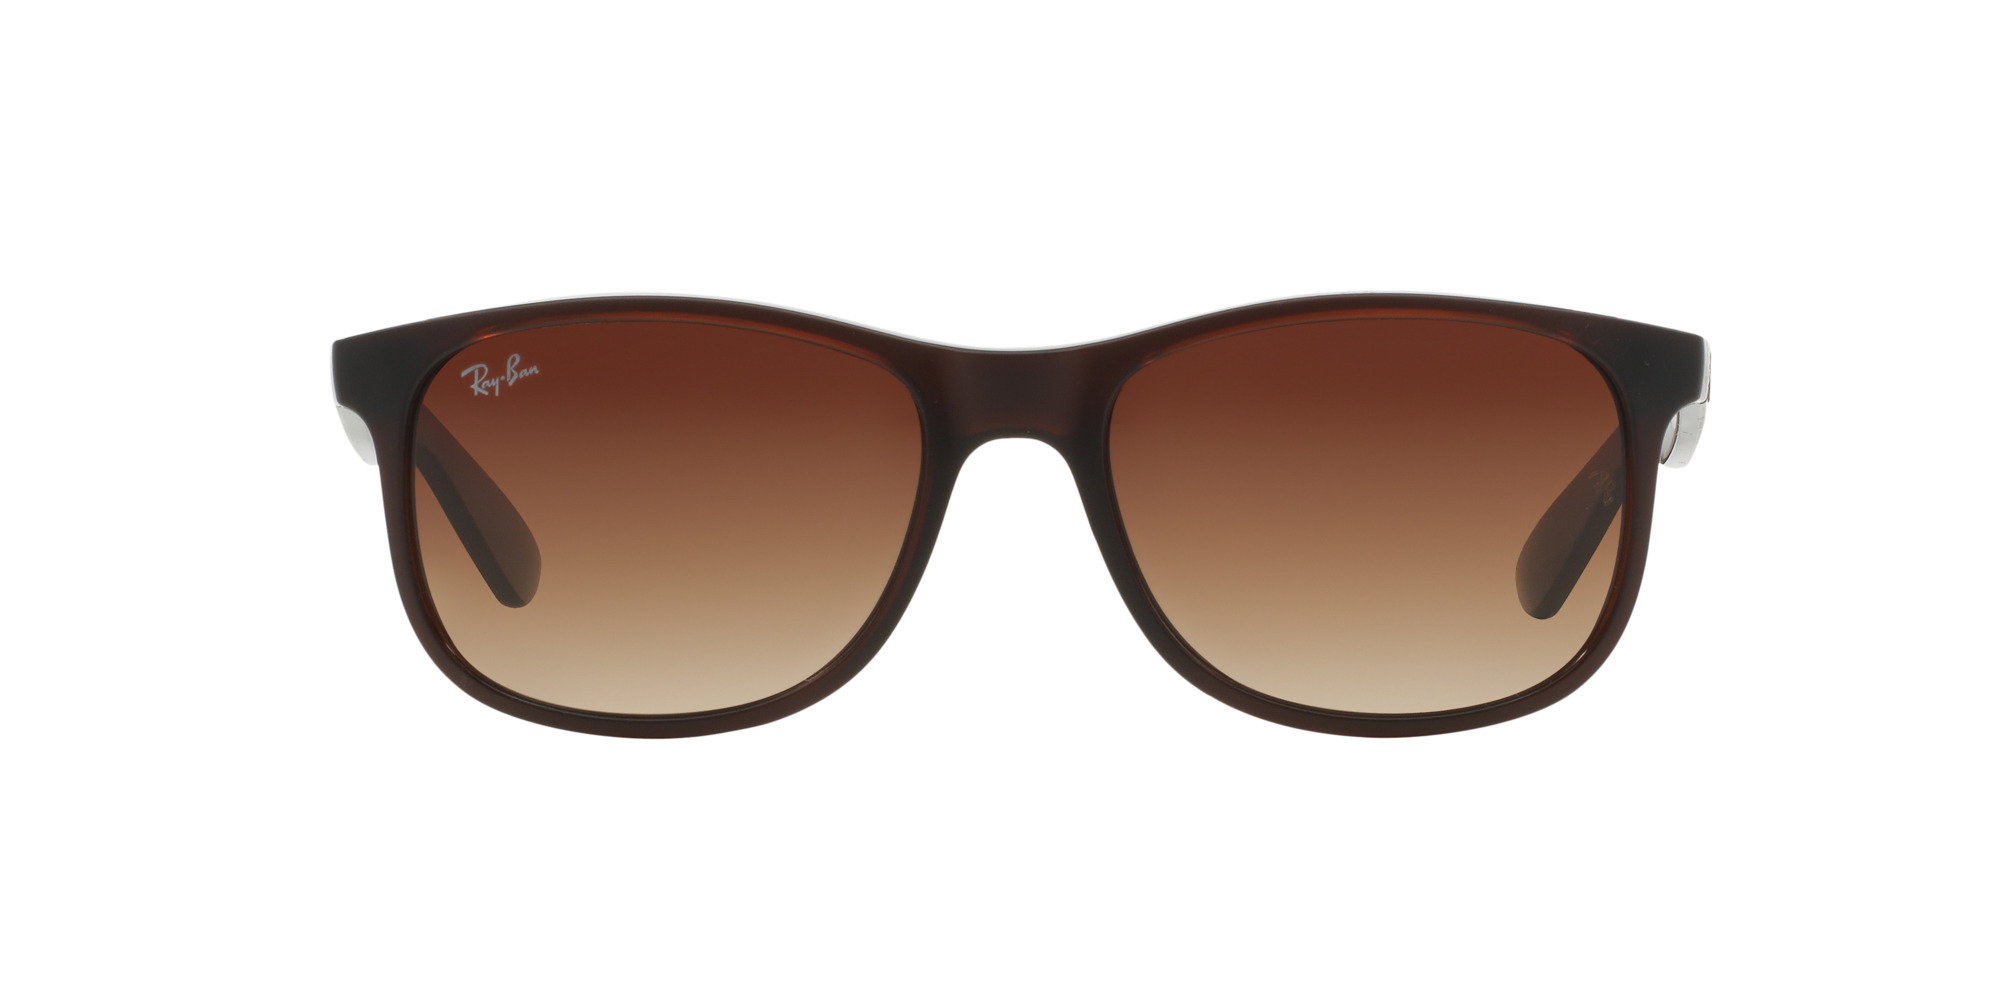 RAY-BAN ANDY RB 4202 607313-360